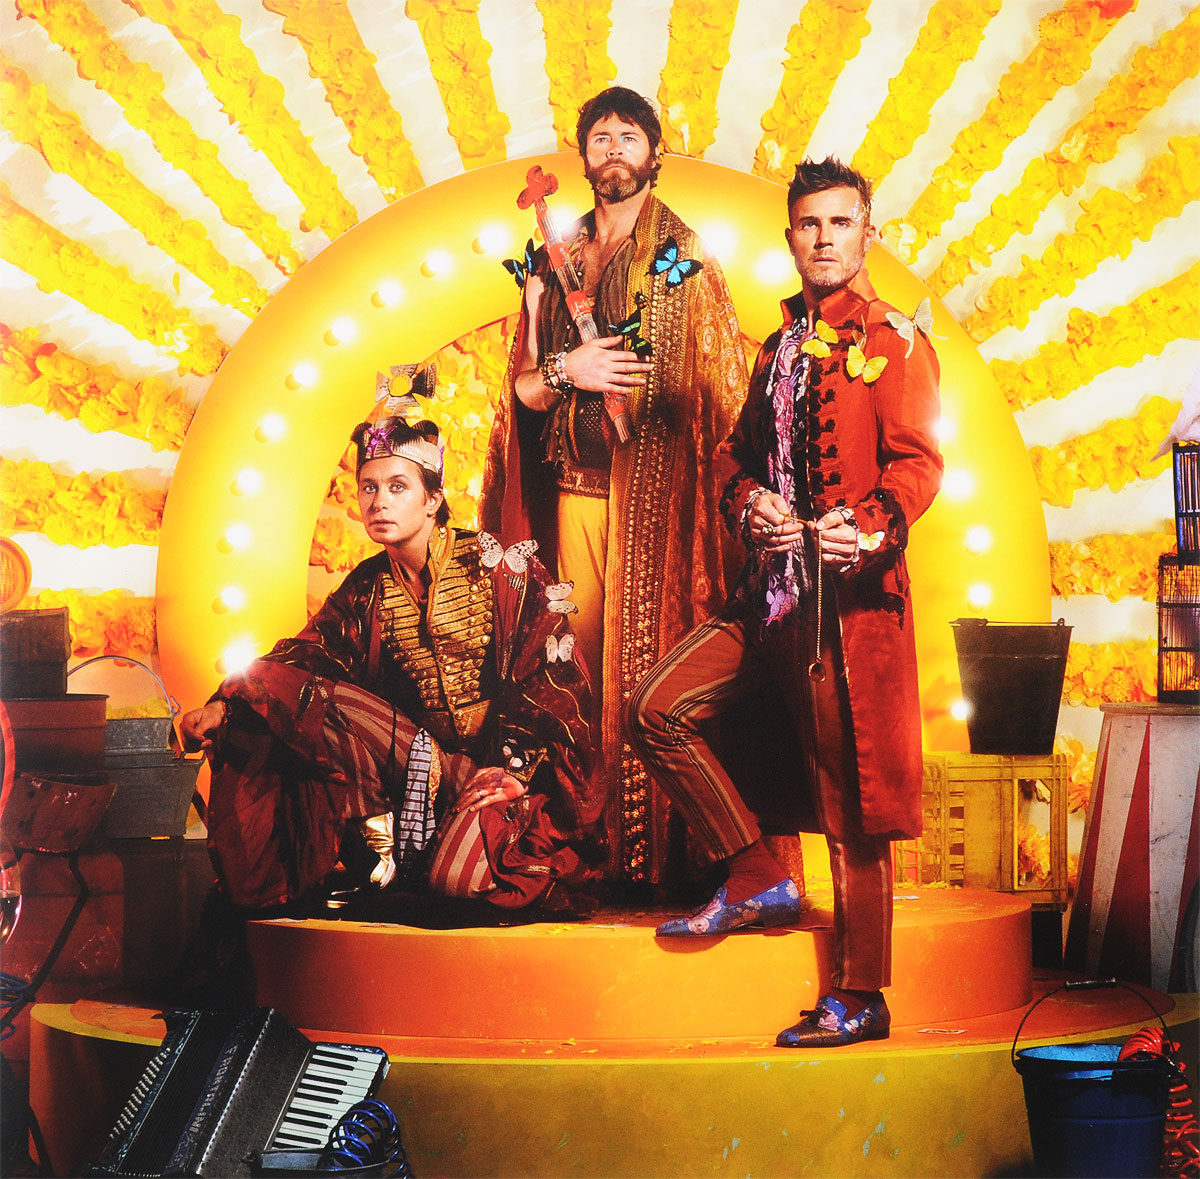 Take That Take That. Wonderland (LP) take that take that the ultimate collection never forget